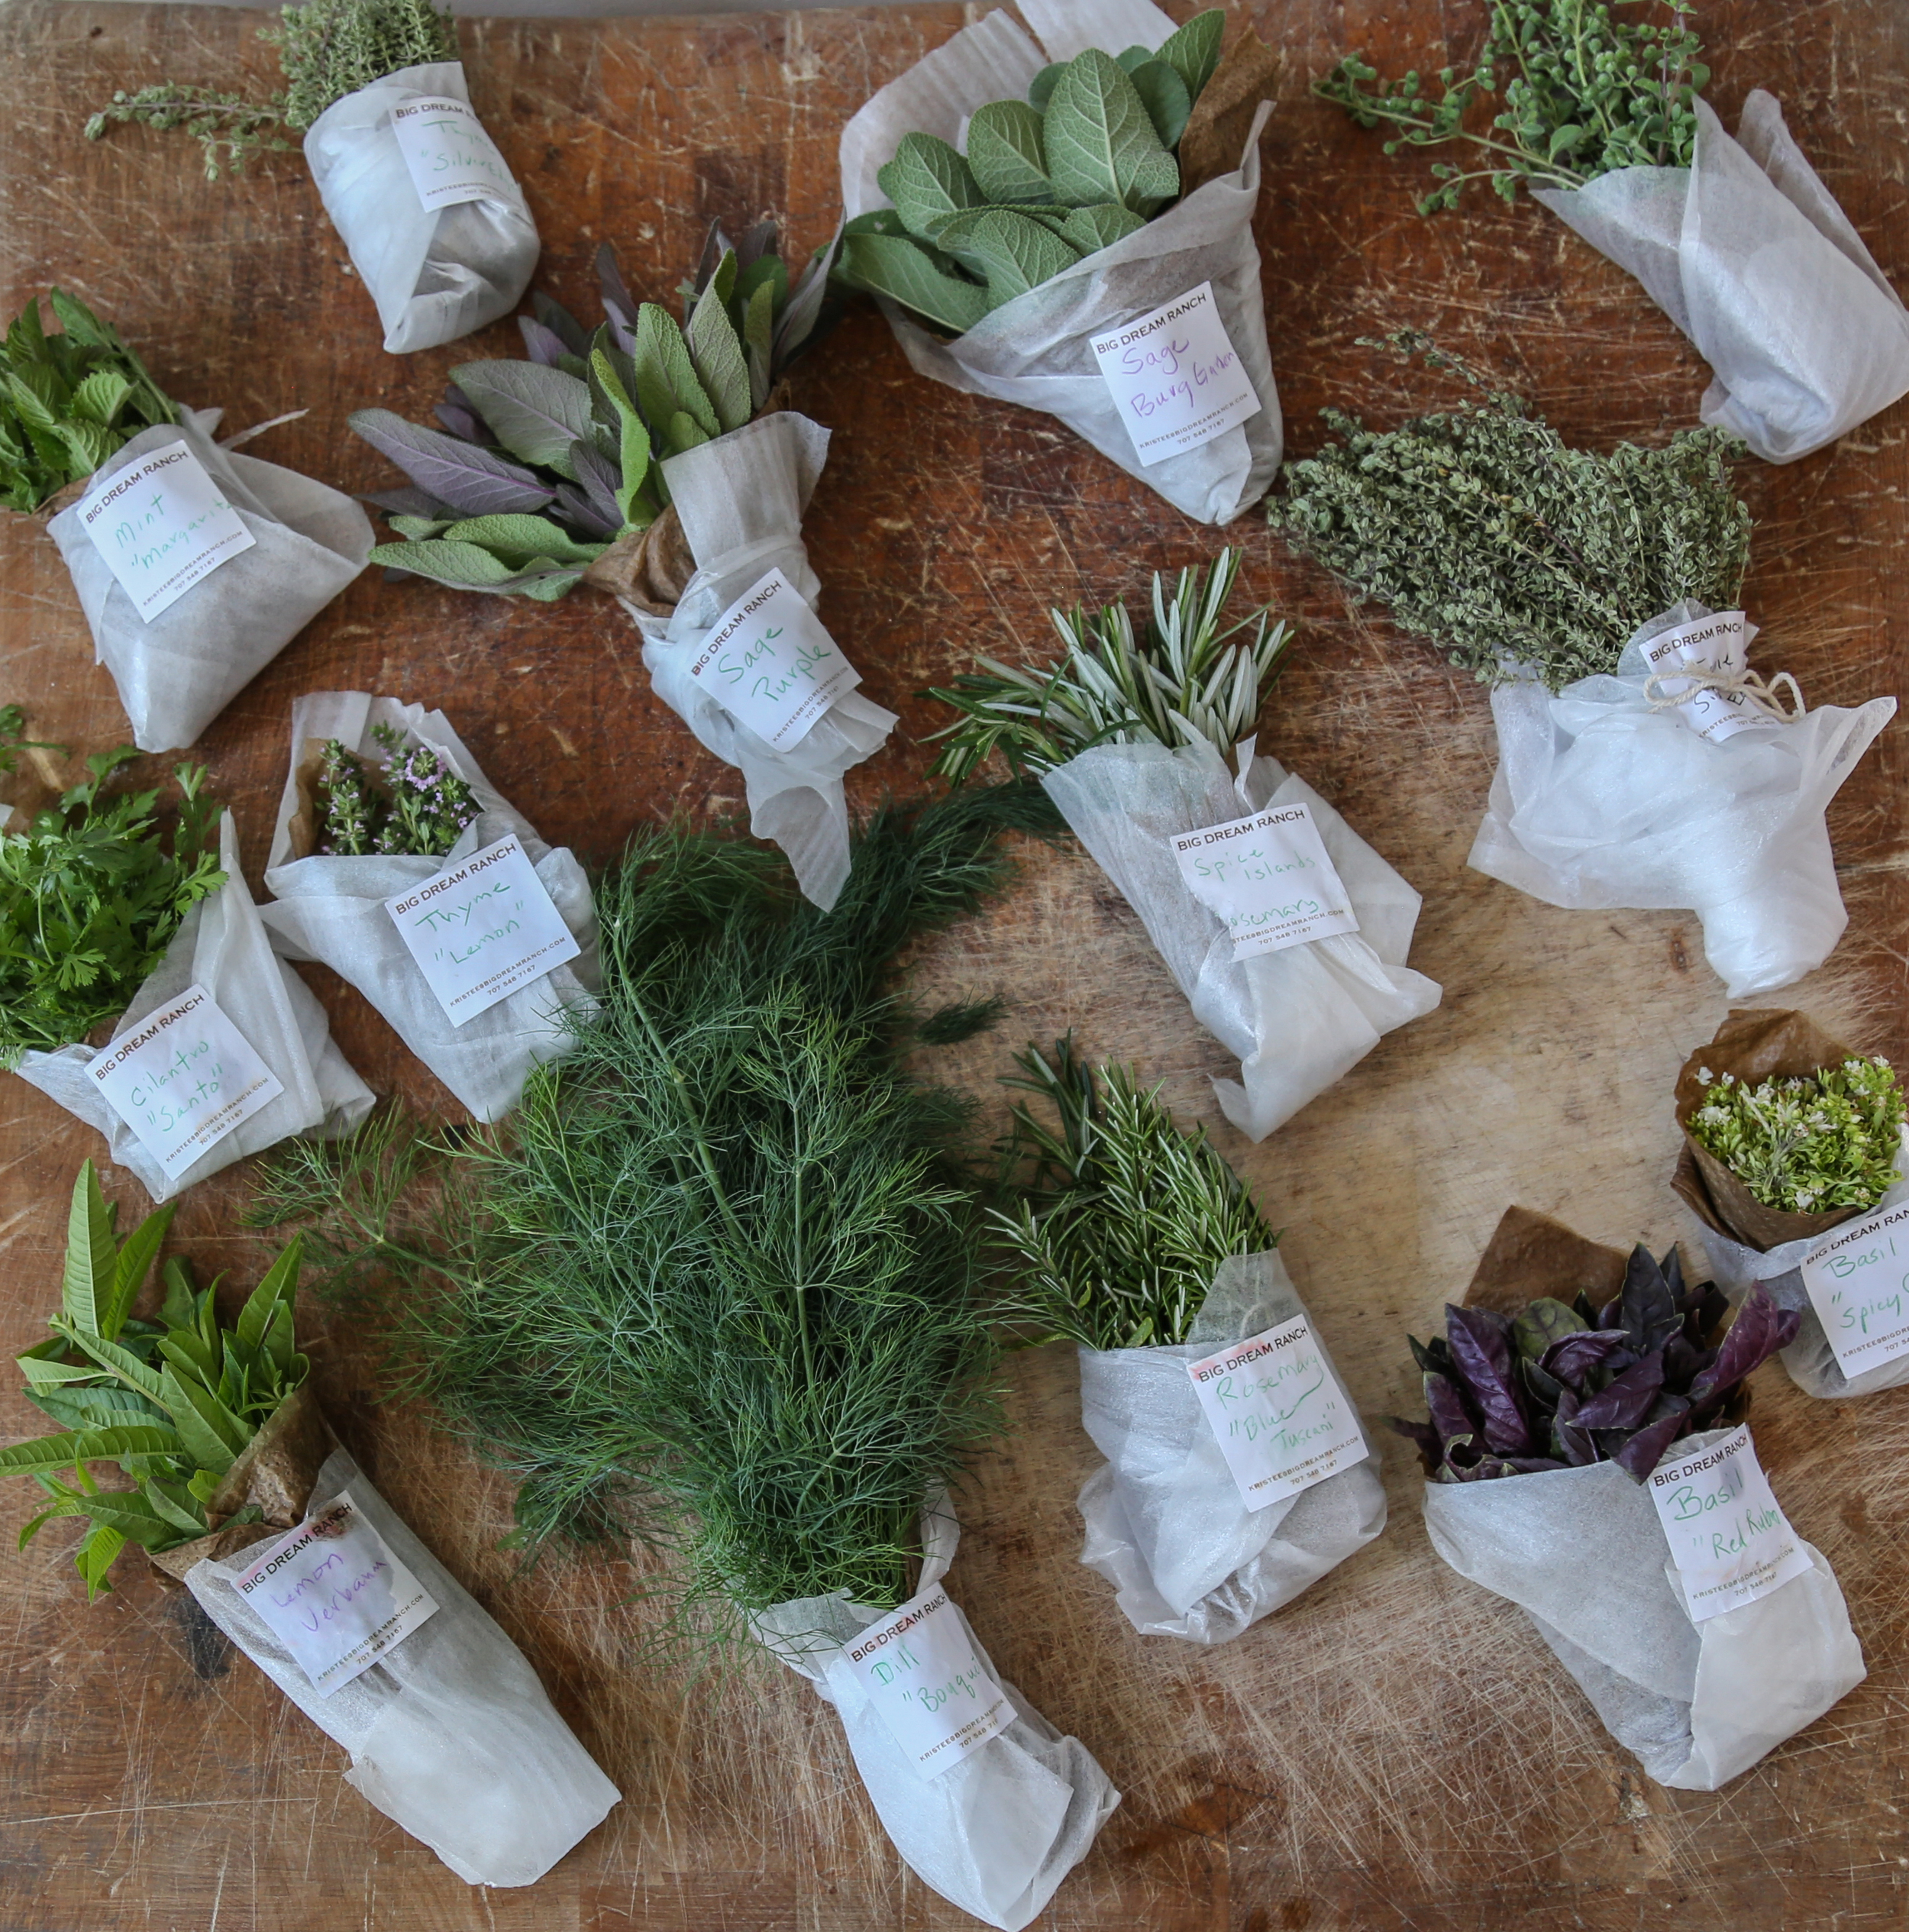 Herbal bounty from our new collaboration with Big Dream Ranch